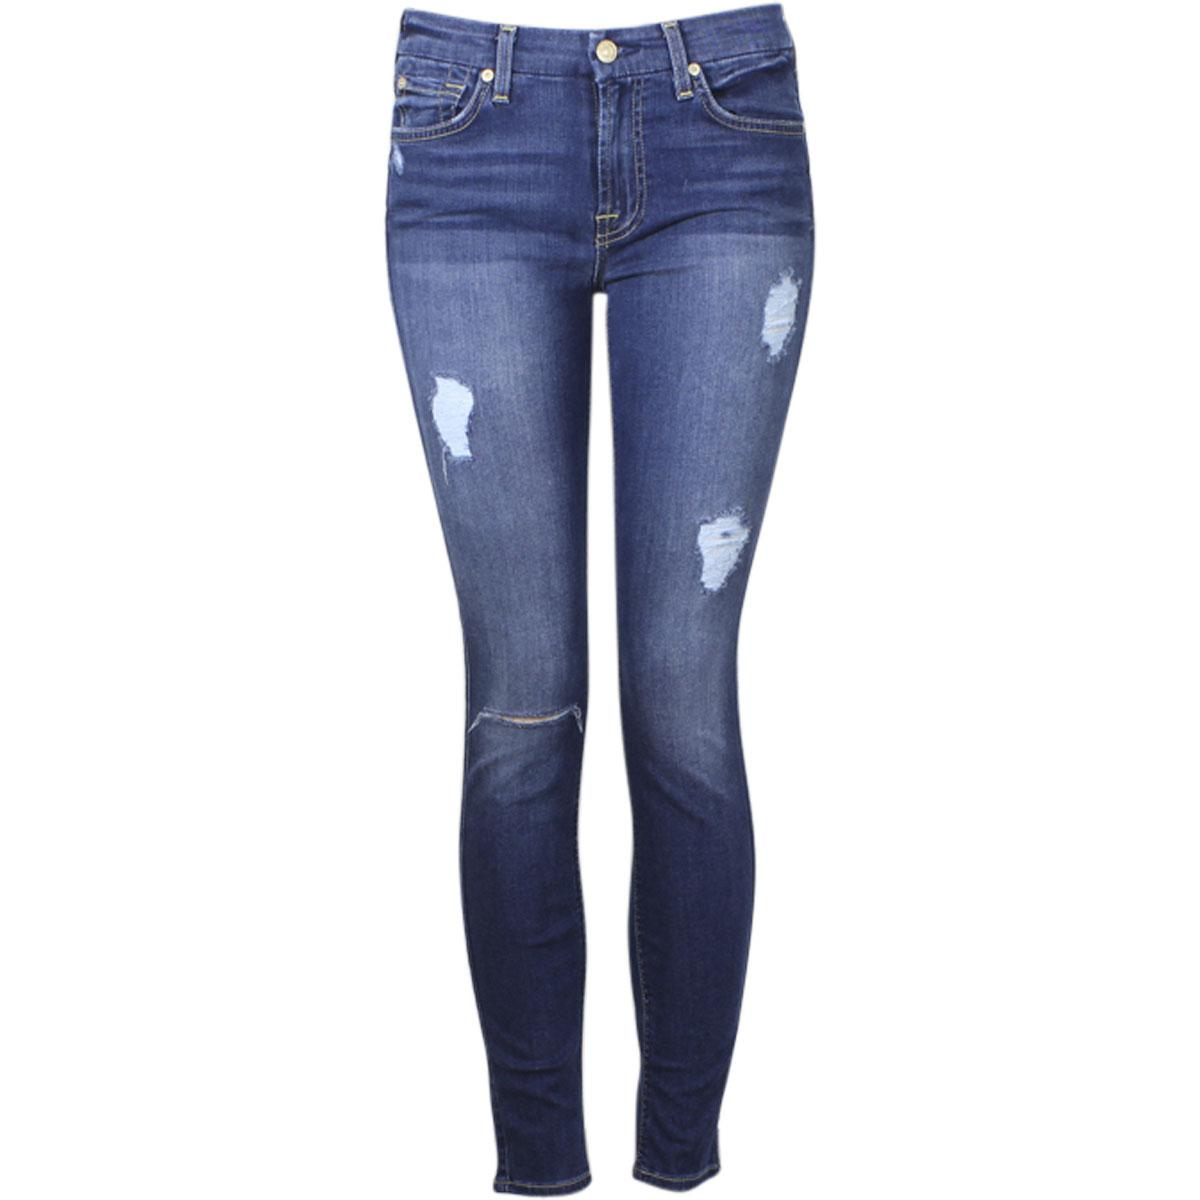 Image of 7 For All Mankind Women's The Ankle Skinny With Destroy (B)Air Denim Jeans - Blue - 26 (1/2)